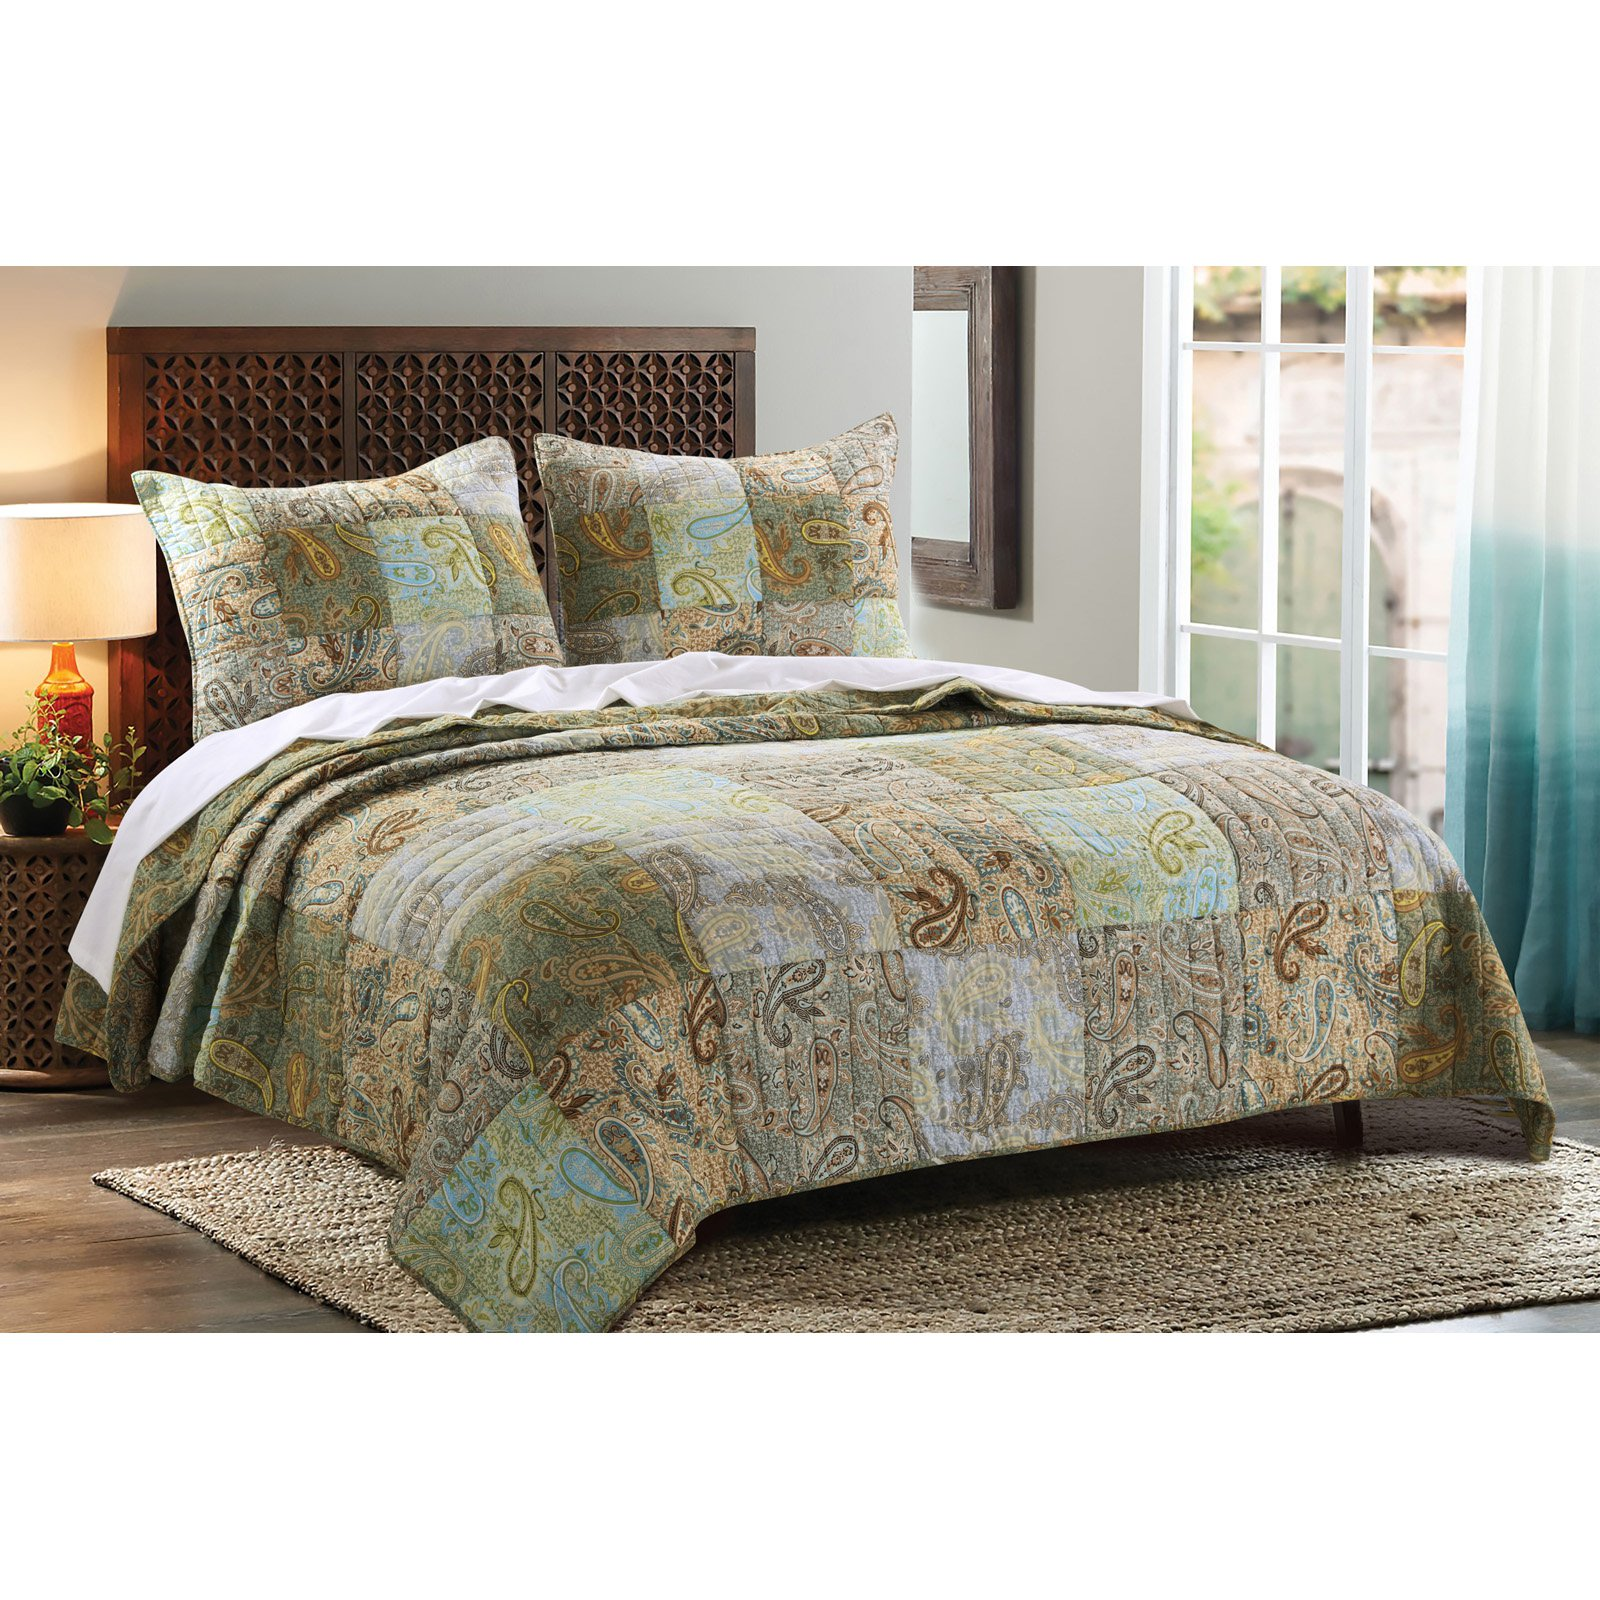 Blue and green paisley bedding - Blue And Green Paisley Bedding 22